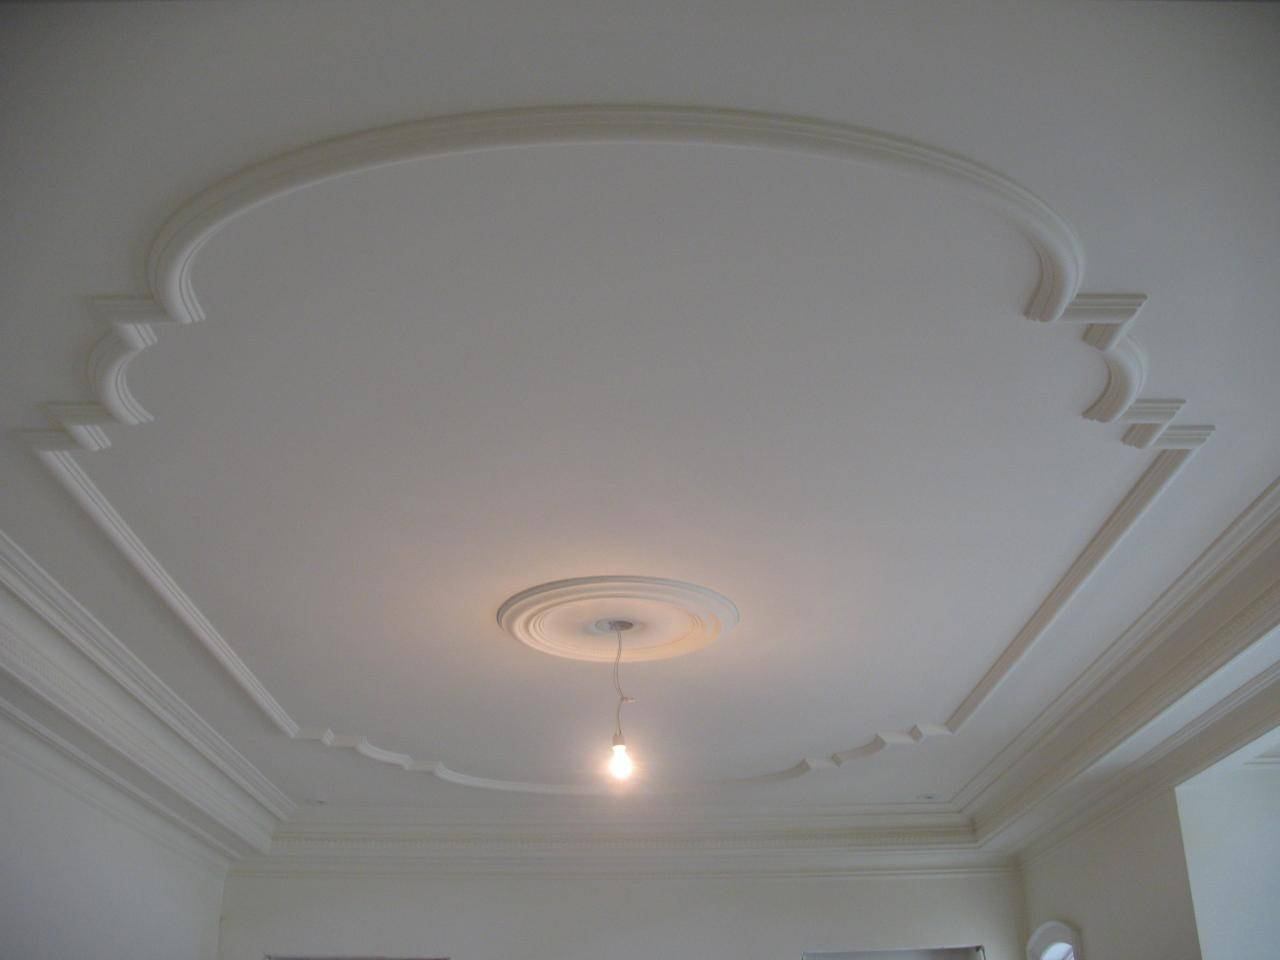 Stunning Designs Of Roof Ceiling Ideas Barb Homes